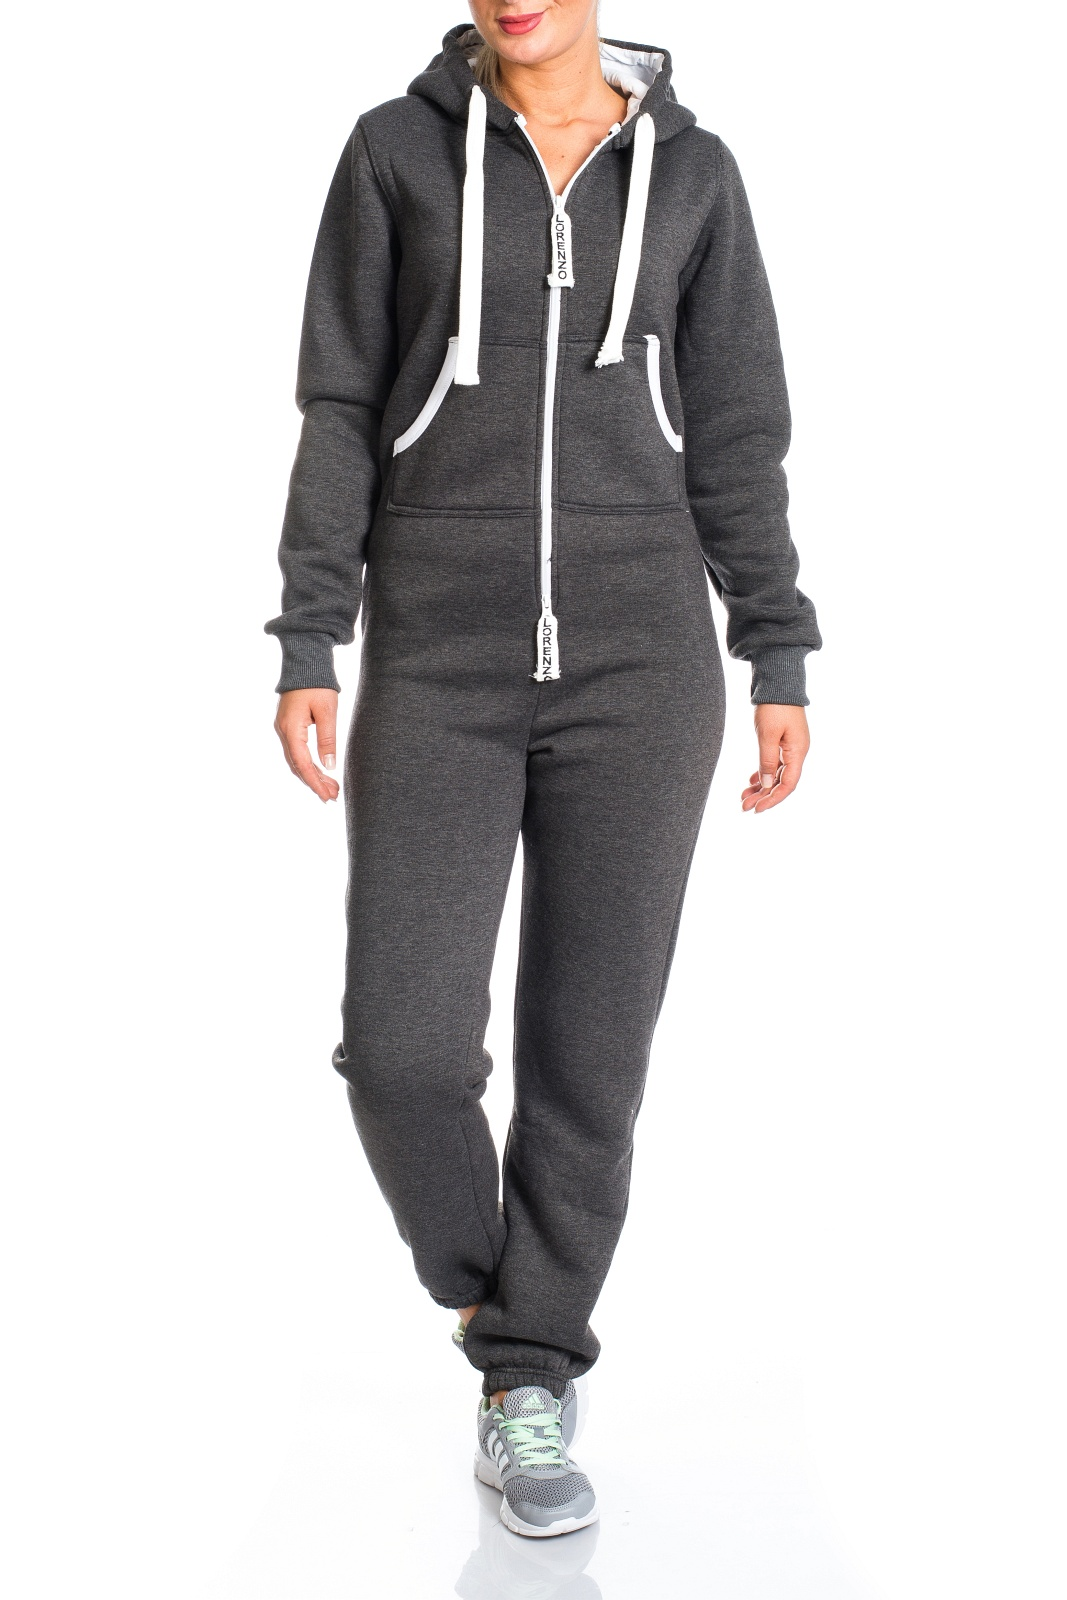 damen jumpsuit jogger jogging anzug trainingsanzug overall onesie ll 203c ebay. Black Bedroom Furniture Sets. Home Design Ideas